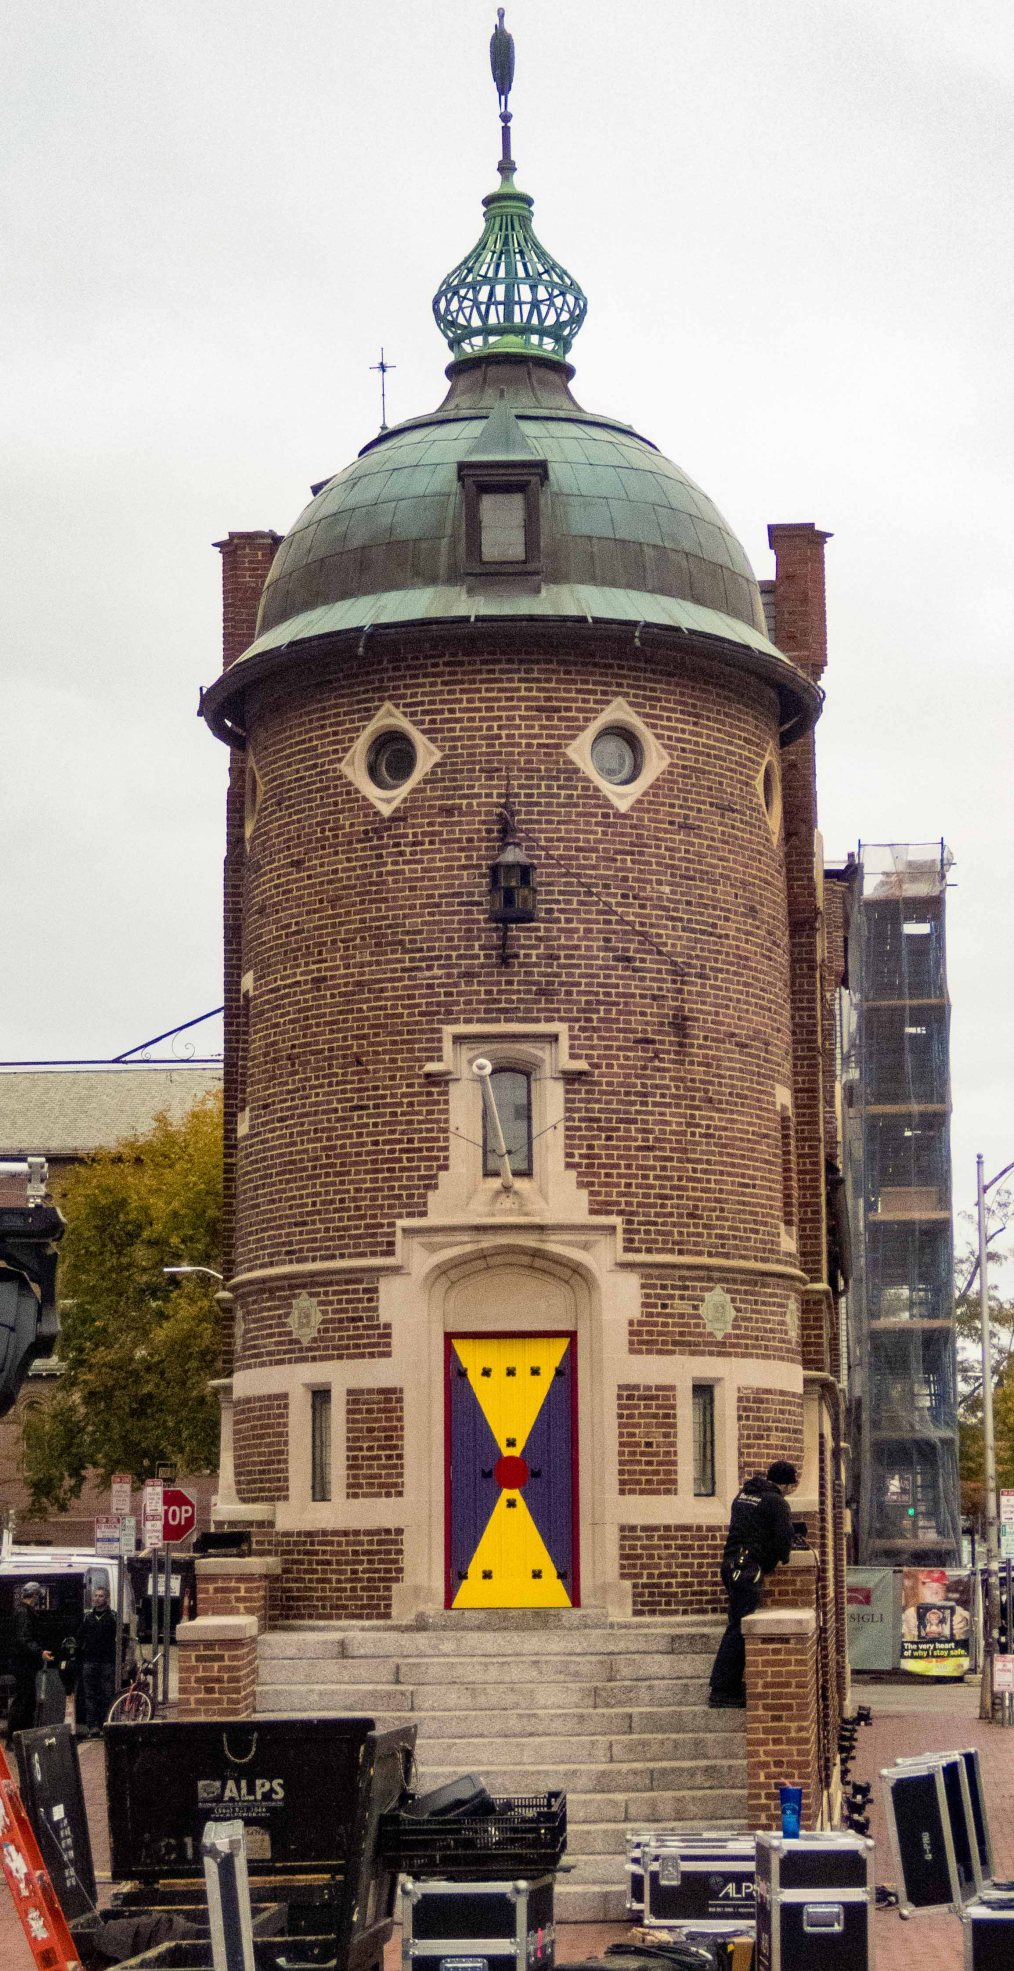 The whimsical building of the Harvard Lampoon